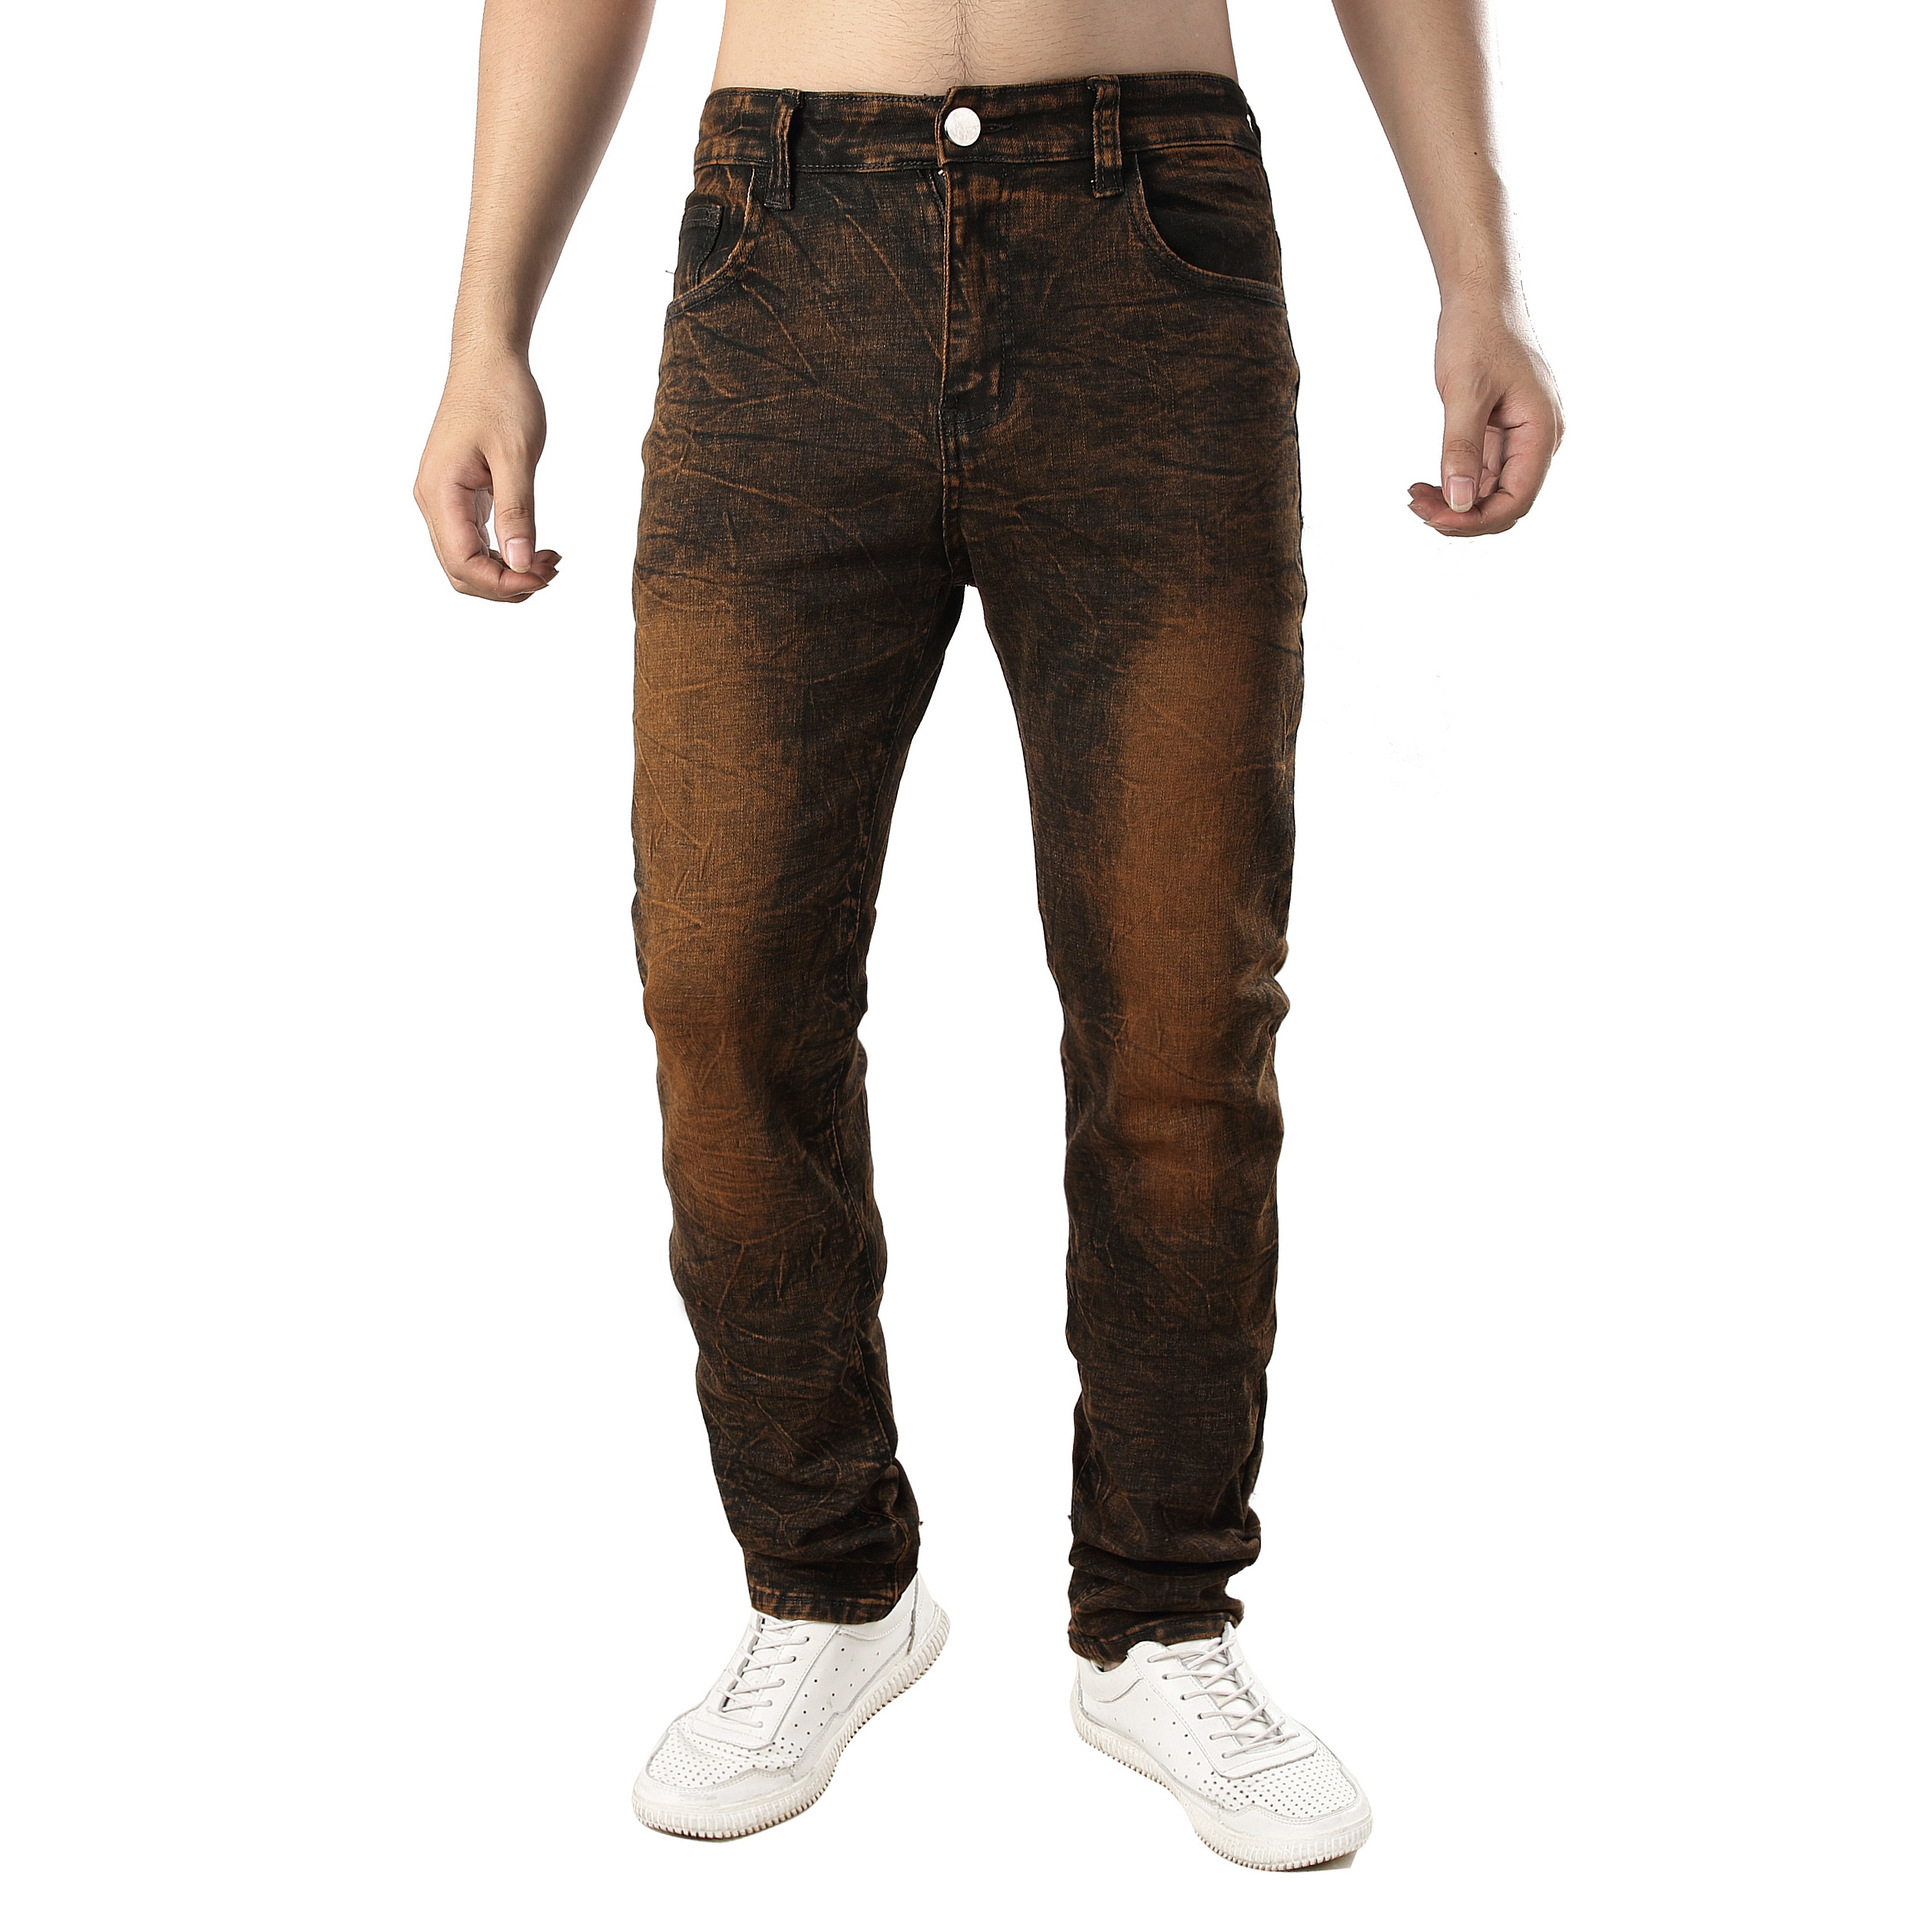 Men Ultra-stretch Slim Fit Jeans Drag Color Men'S Wear Hot Selling Cowboy Trousers